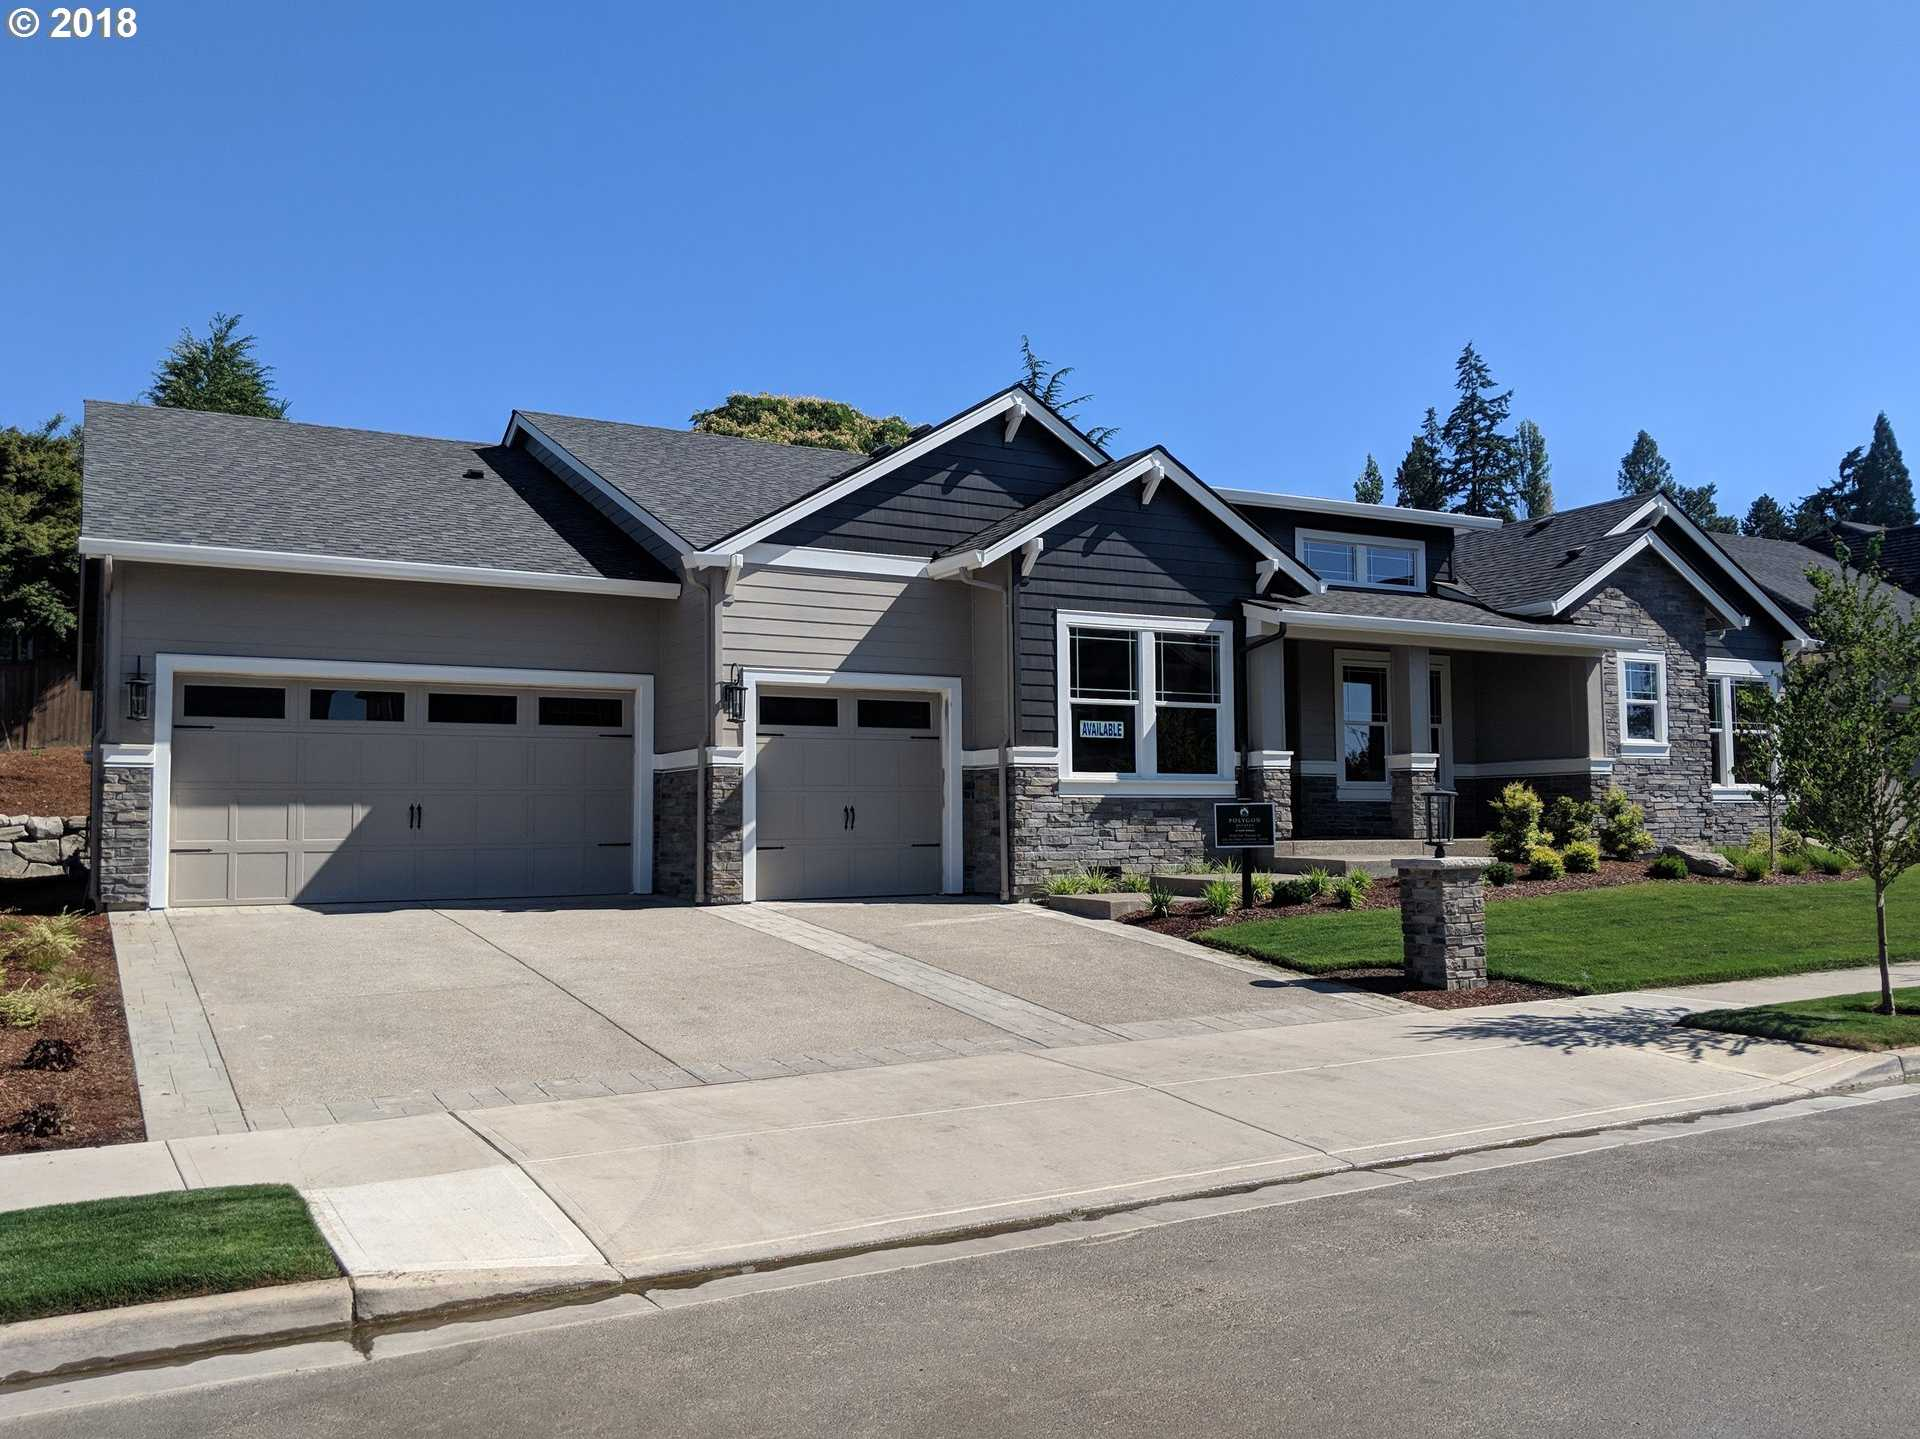 $899,990 - 4Br/4Ba -  for Sale in The Estates At River Terrace, Tigard